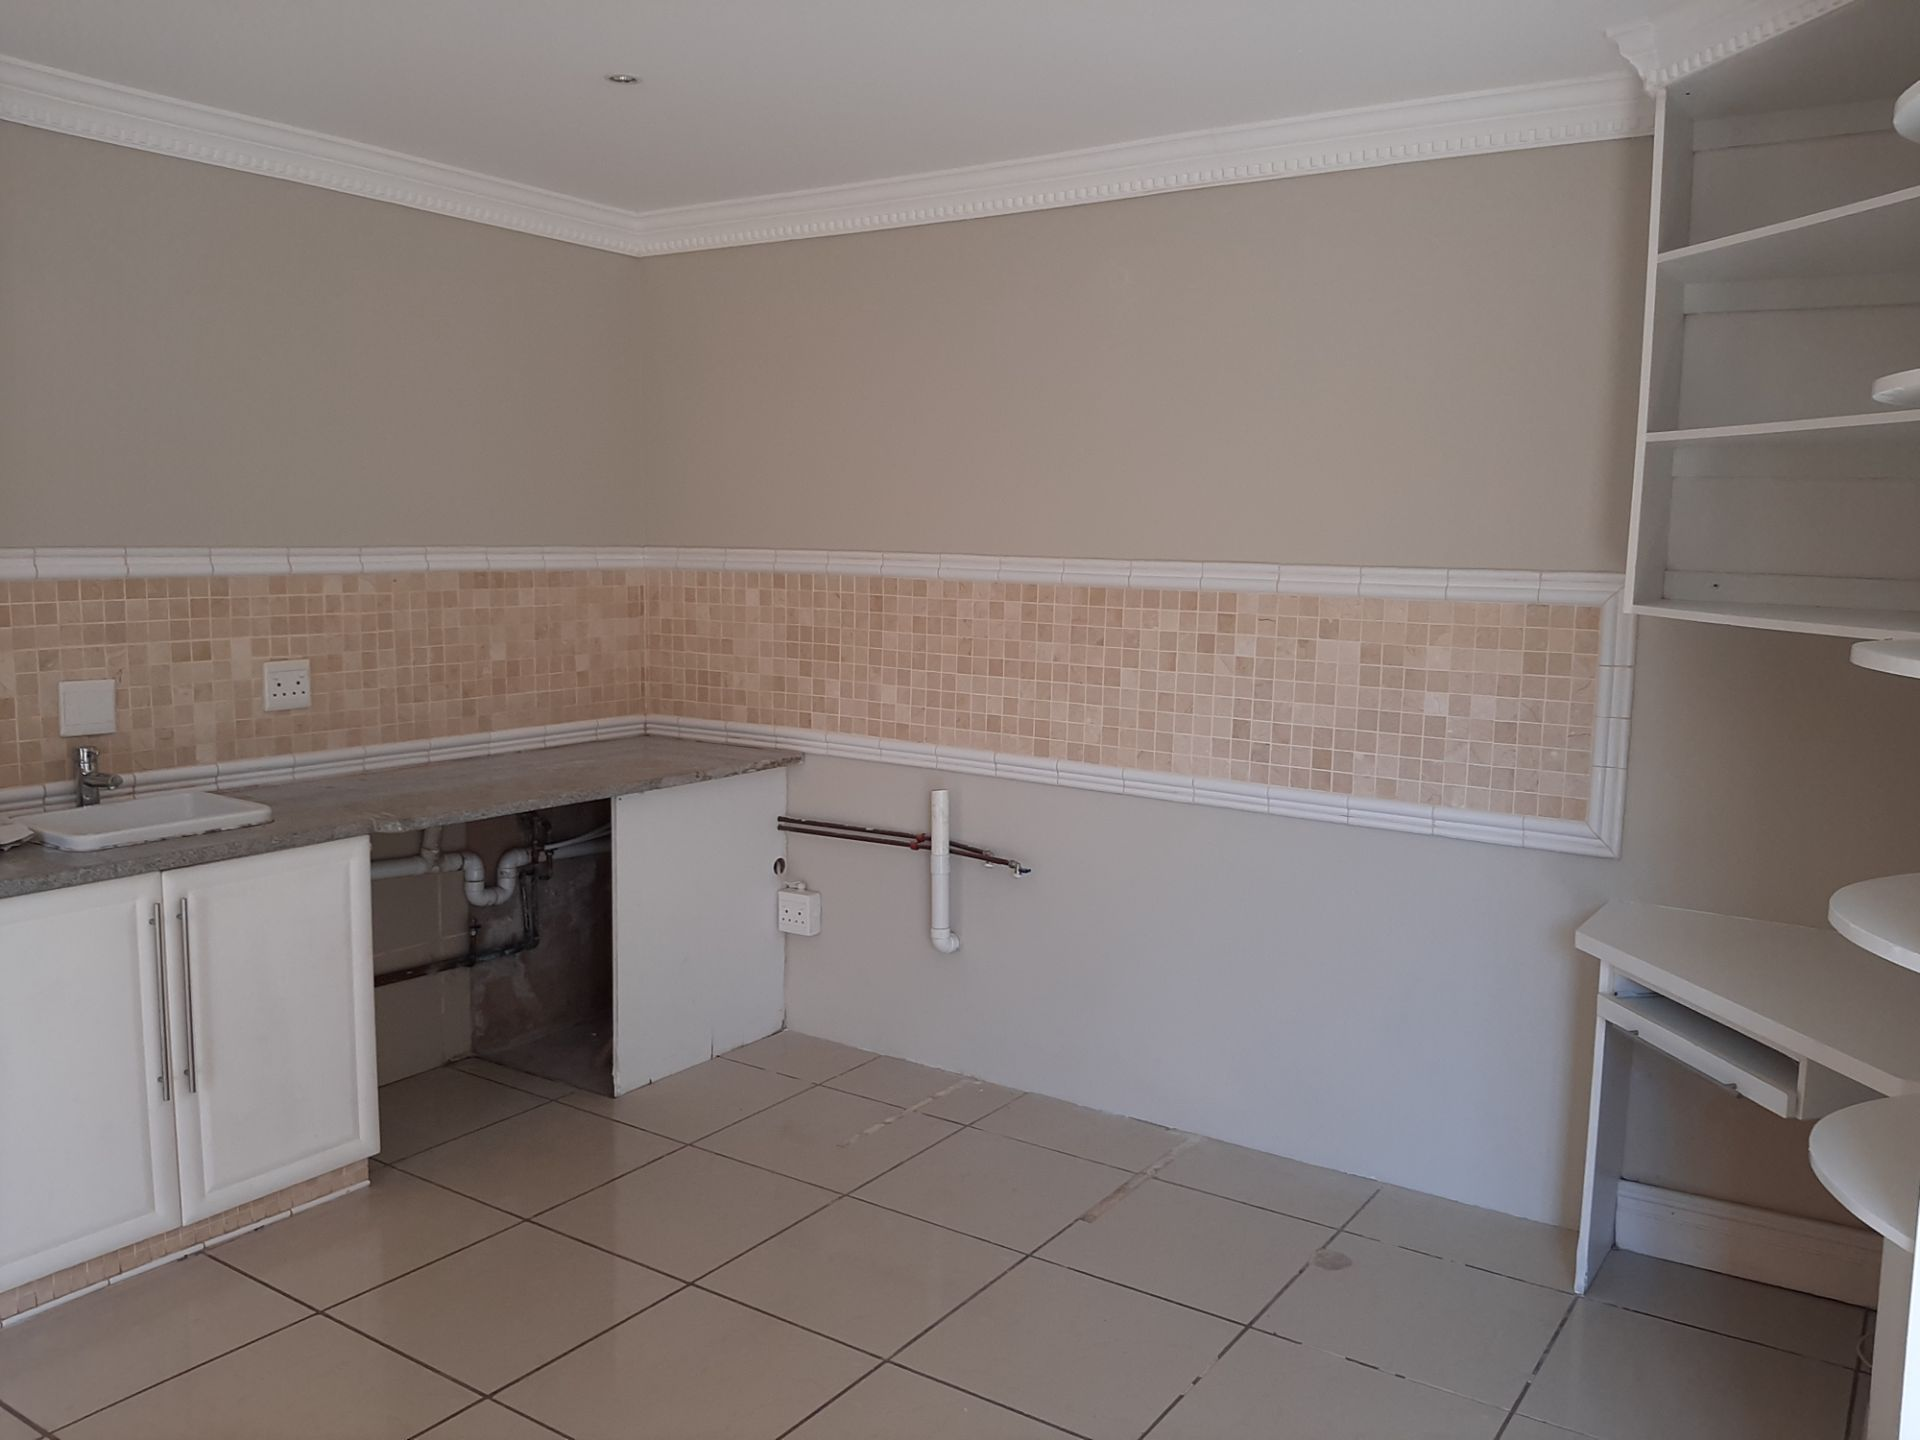 Apartment in Southbroom - Flat kitchen